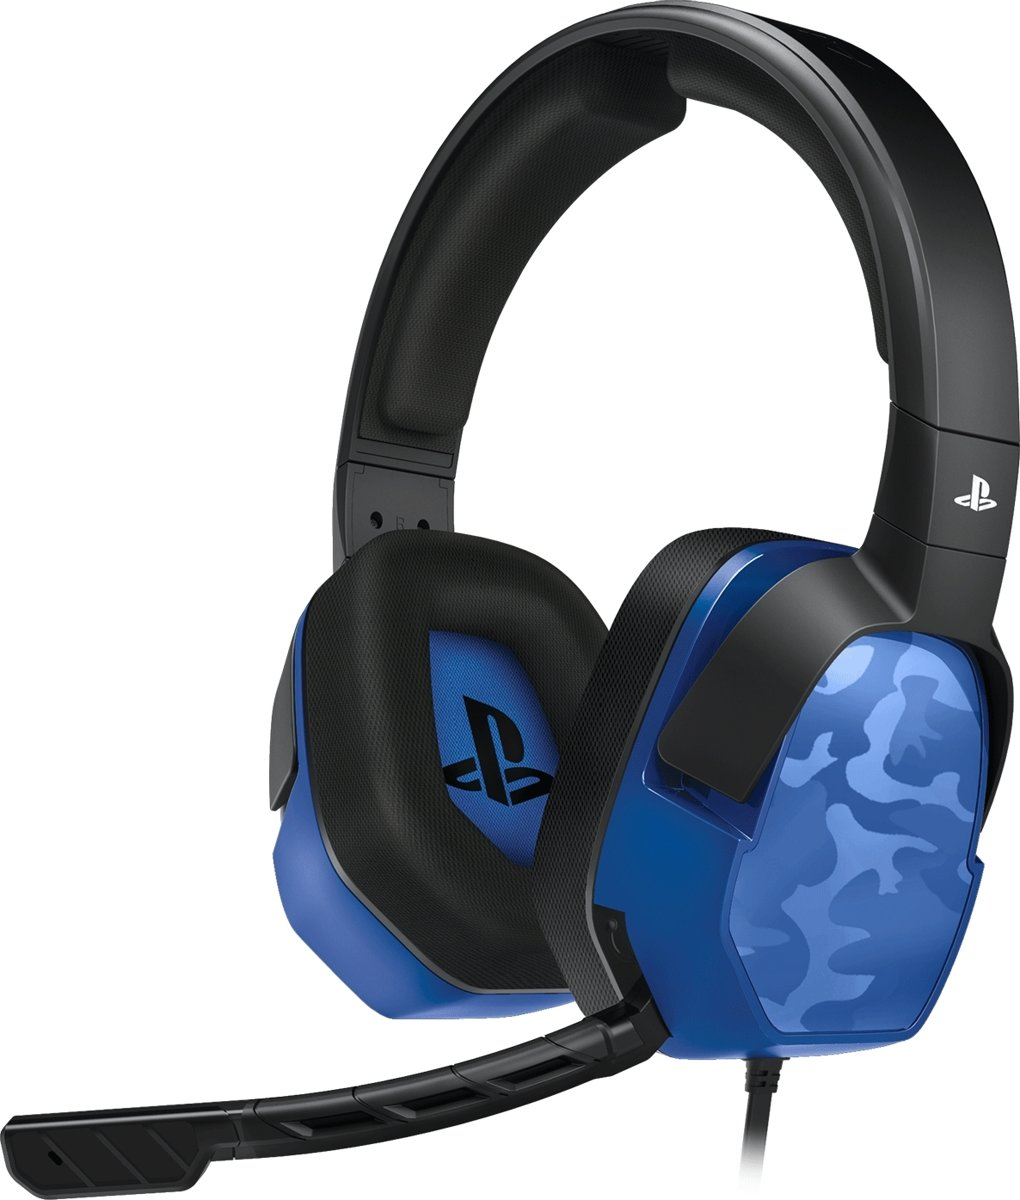 Afterglow LVL 3 - Gaming Headset - Official Licensed - PS4 - Blauw Camo